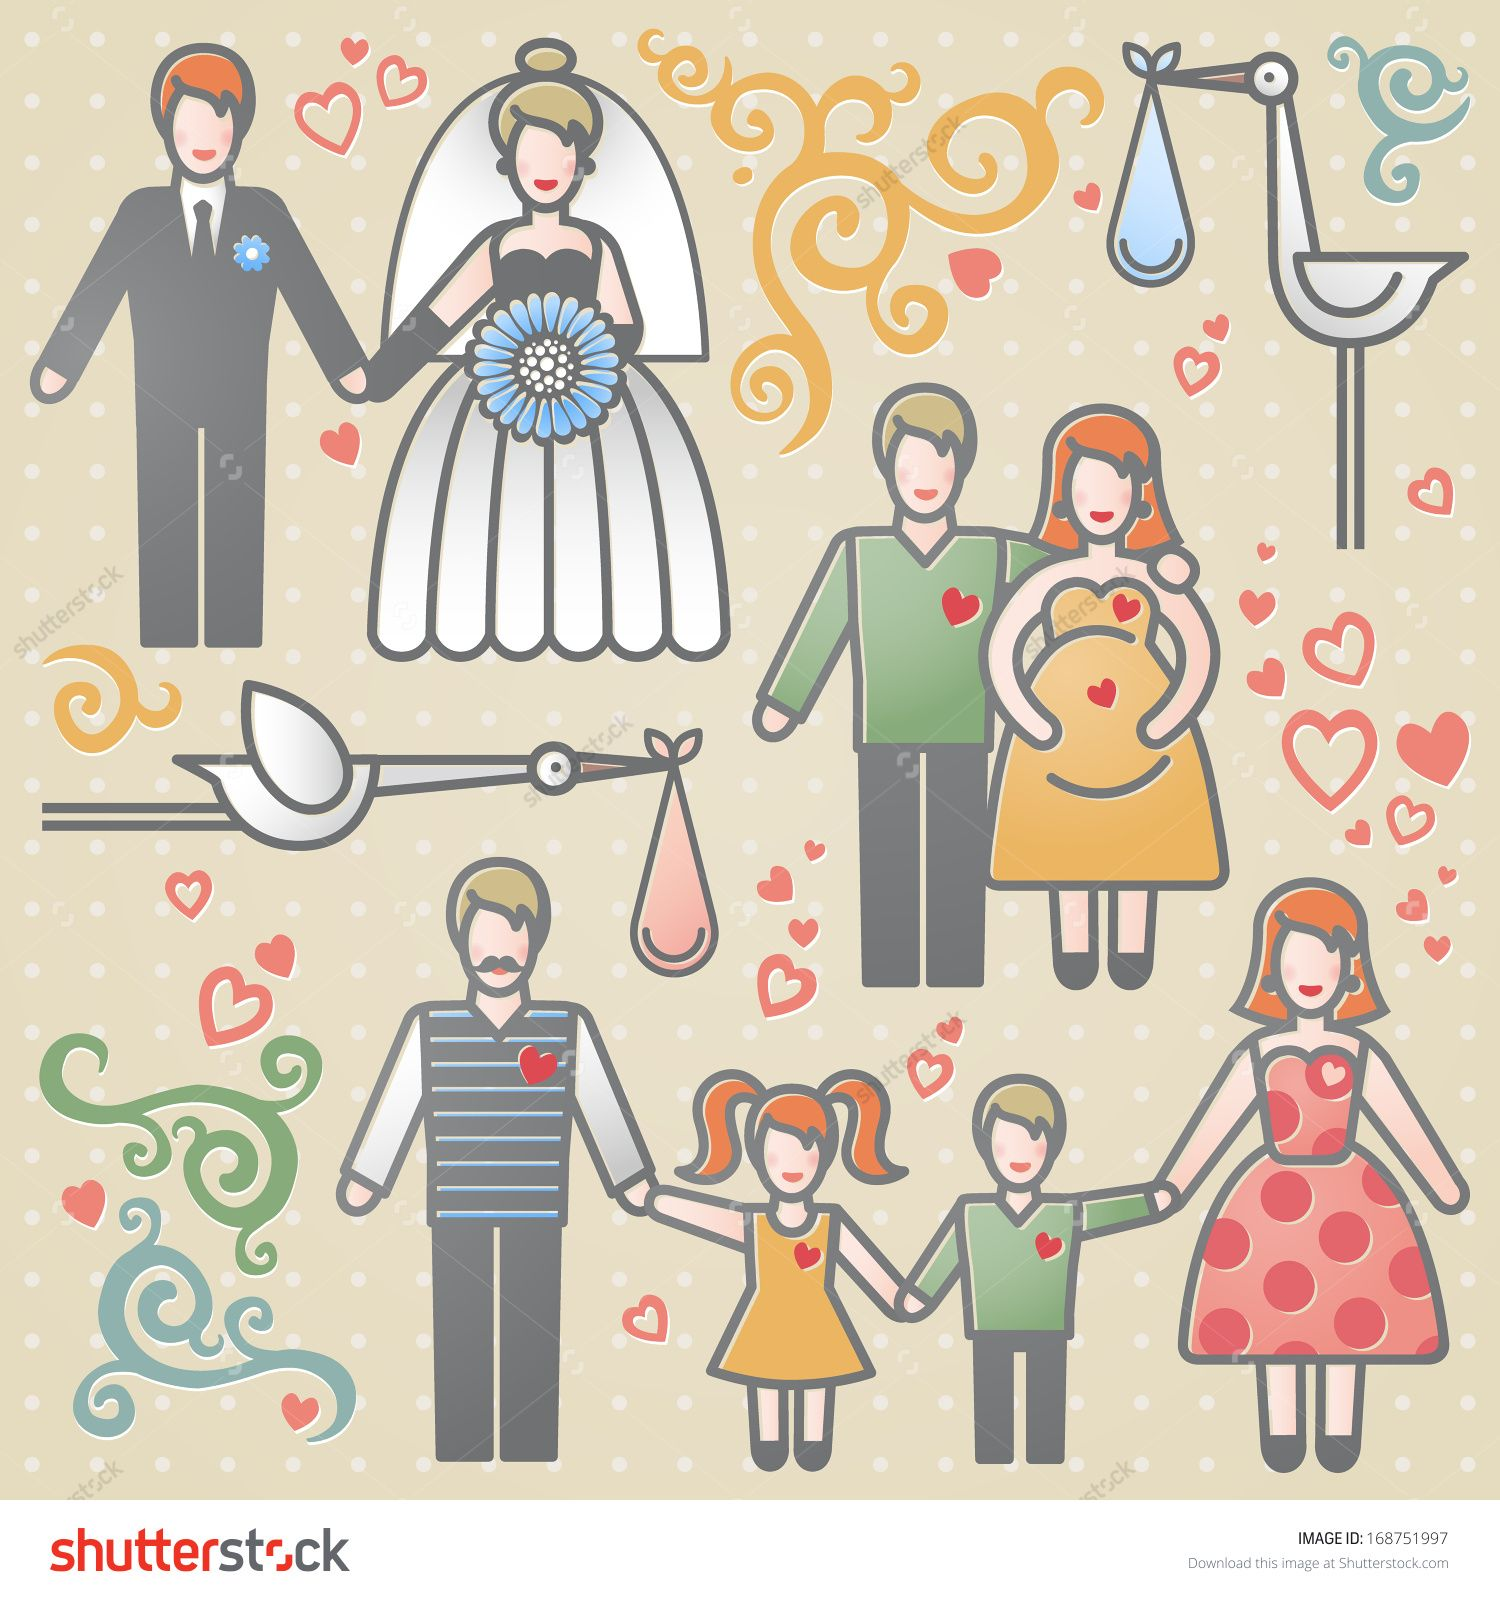 Vector set with happy families. Father, mother and children. Design elements, designers toolkit. It can be used for decoration of web page, invitations, cards, brochures, magazines, leaflets, bags.